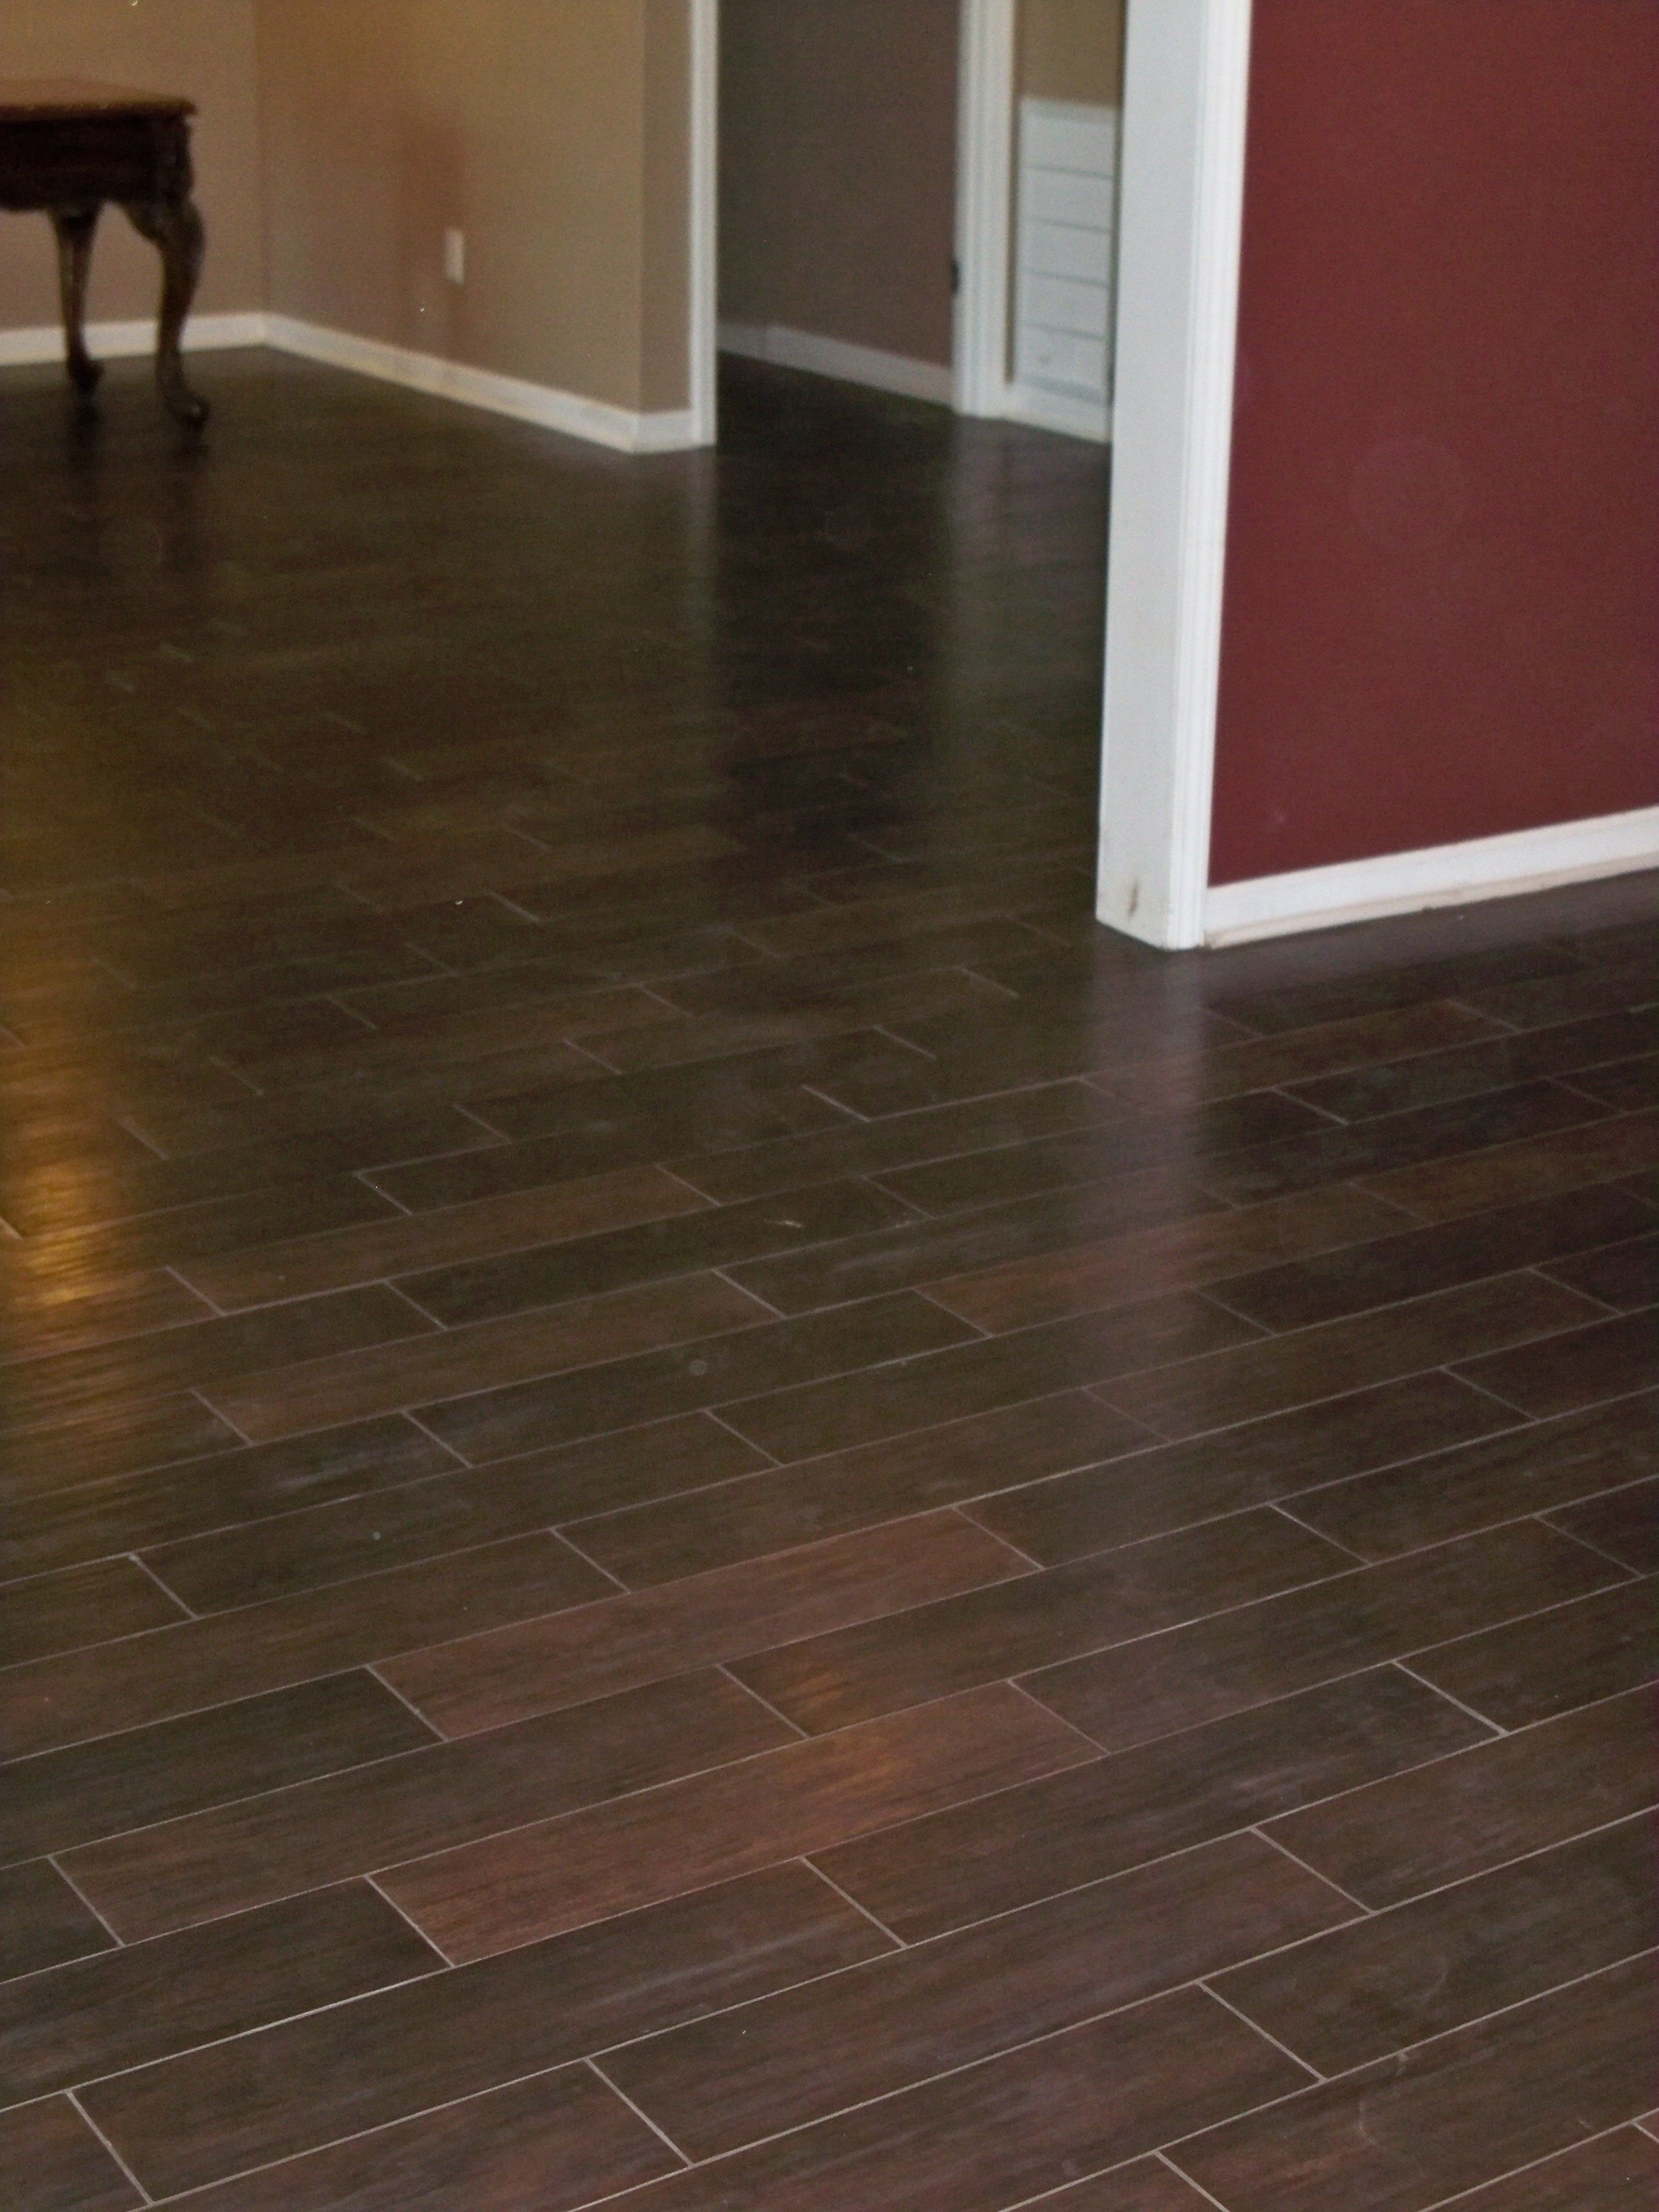 Wood Look Tile Installed In A Basement In N. Forsyth Co. Ga